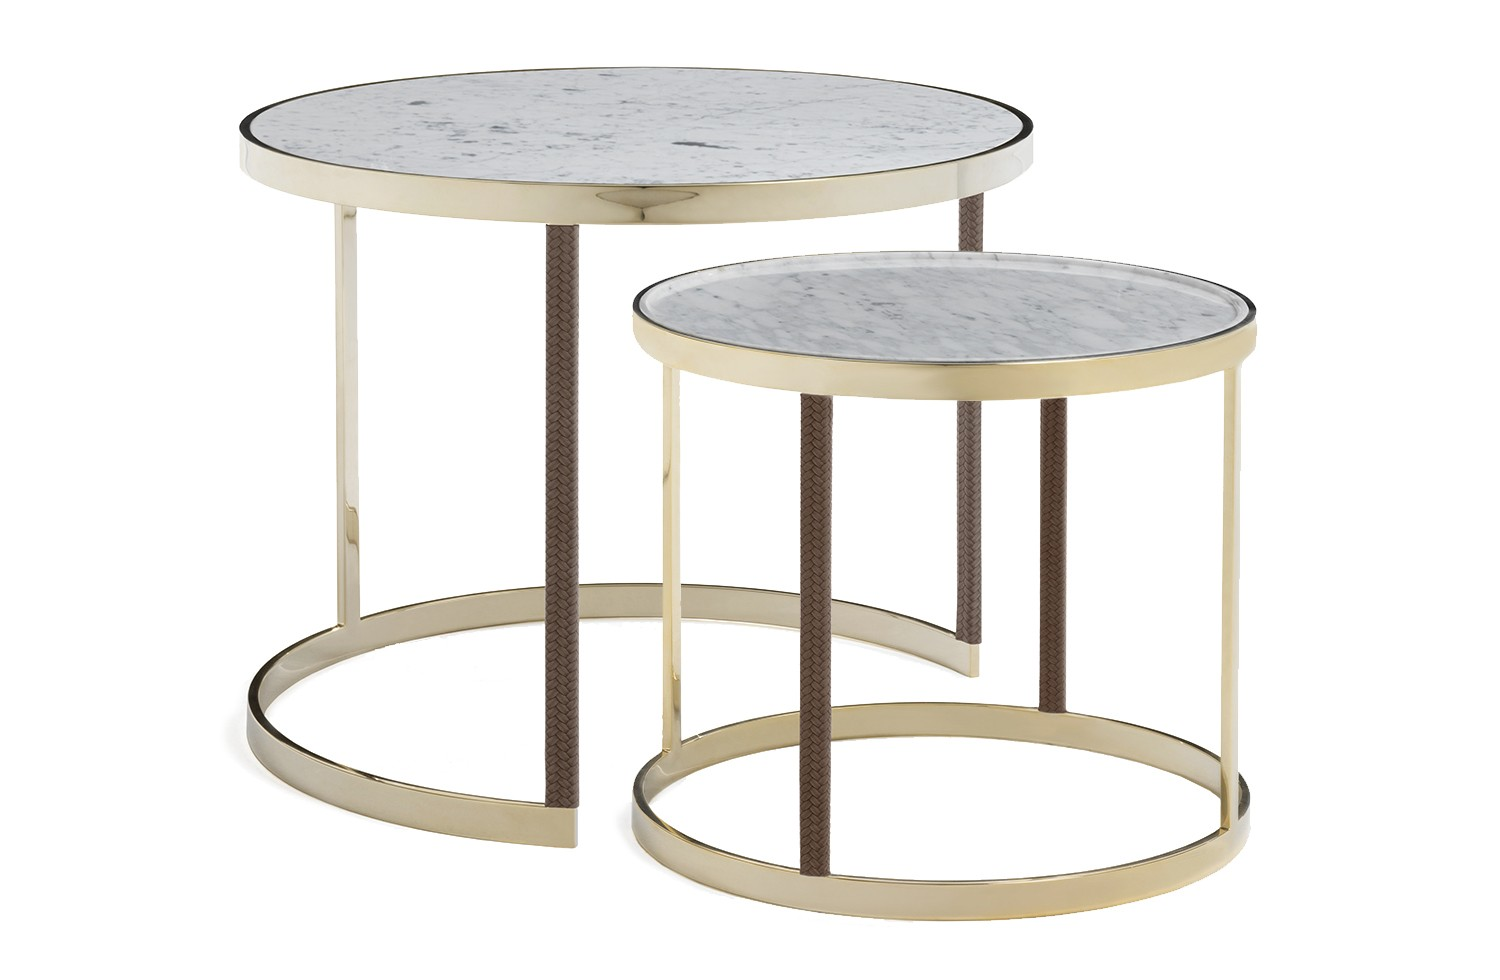 table basse gigogne ronde en marbre amerigo milano. Black Bedroom Furniture Sets. Home Design Ideas